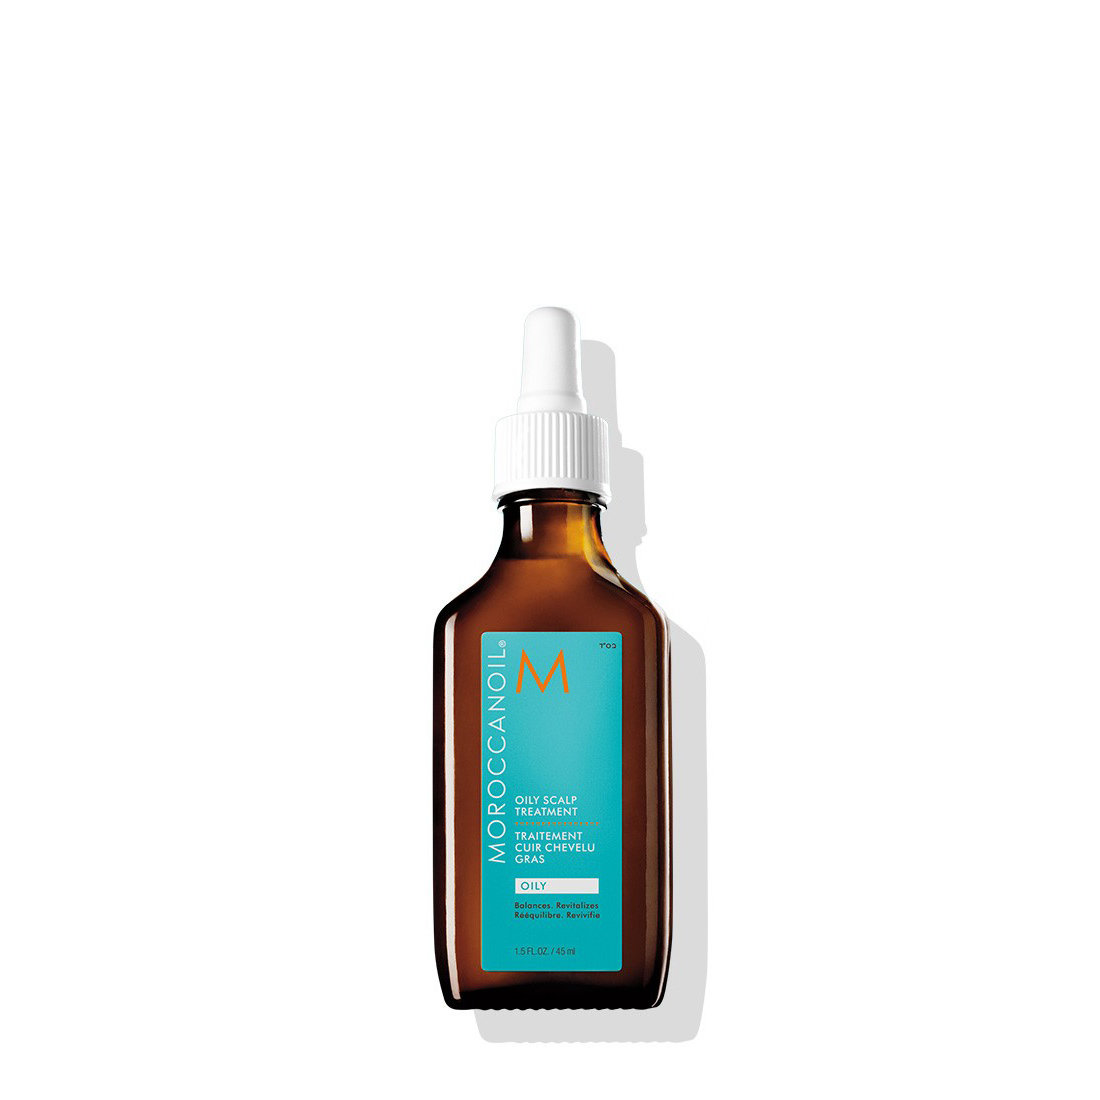 Moroccanoil Oily Scalp Treatment 45 ml | Tratamiento Cuero Cabelludo Graso